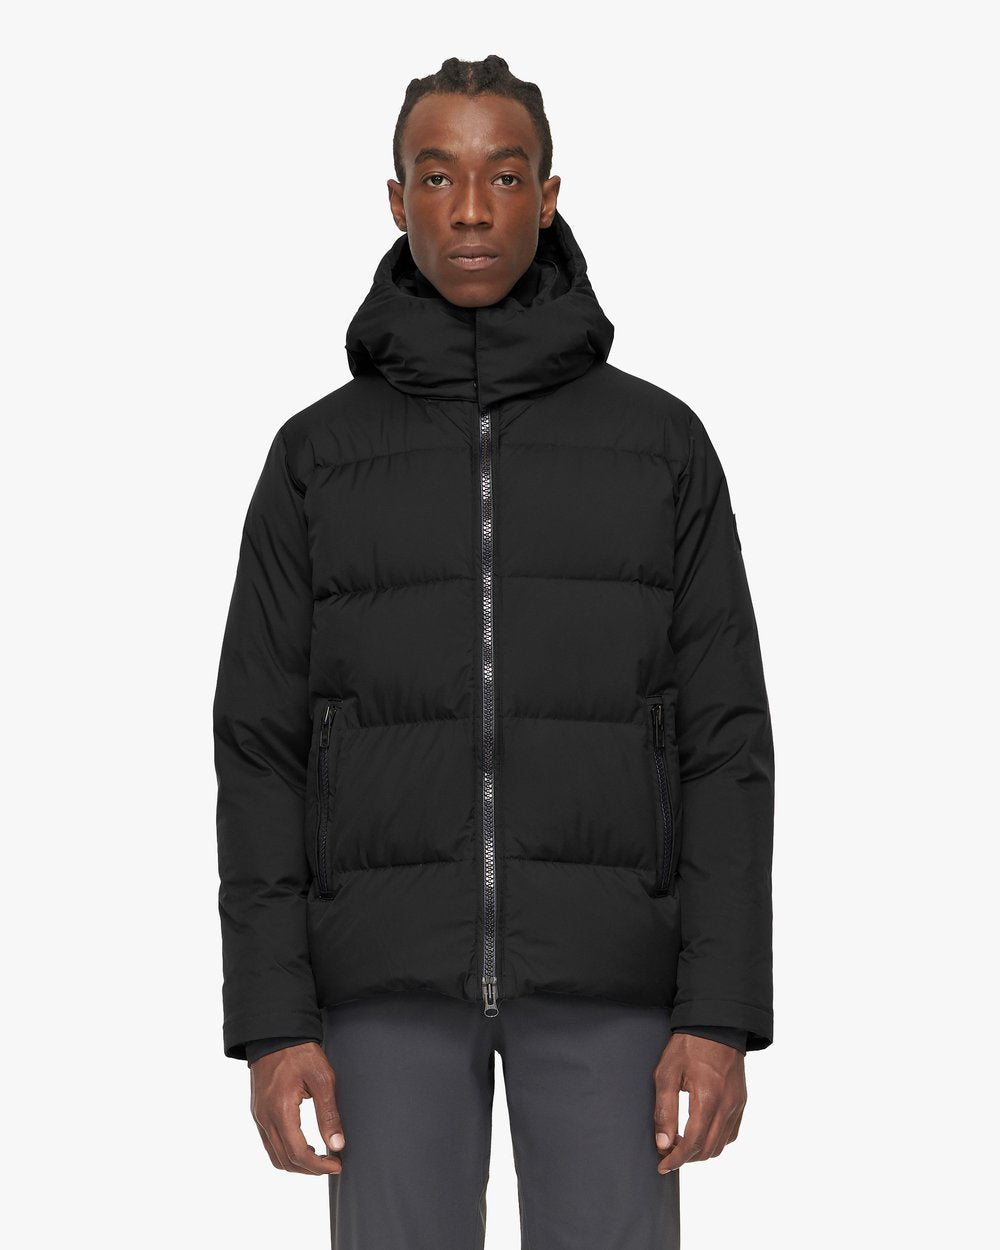 Quartz Co. Kane Down Jacket - Men's